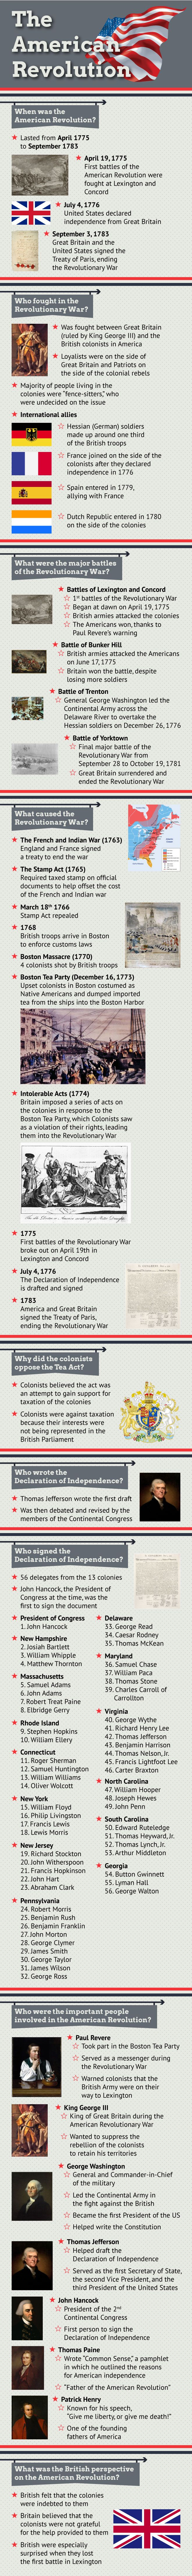 Infographic Of American Revolution Fast Facts Http Www Mapsofworld Com Pages Fast Facts Infographic Of Teaching History American Revolution History Lessons